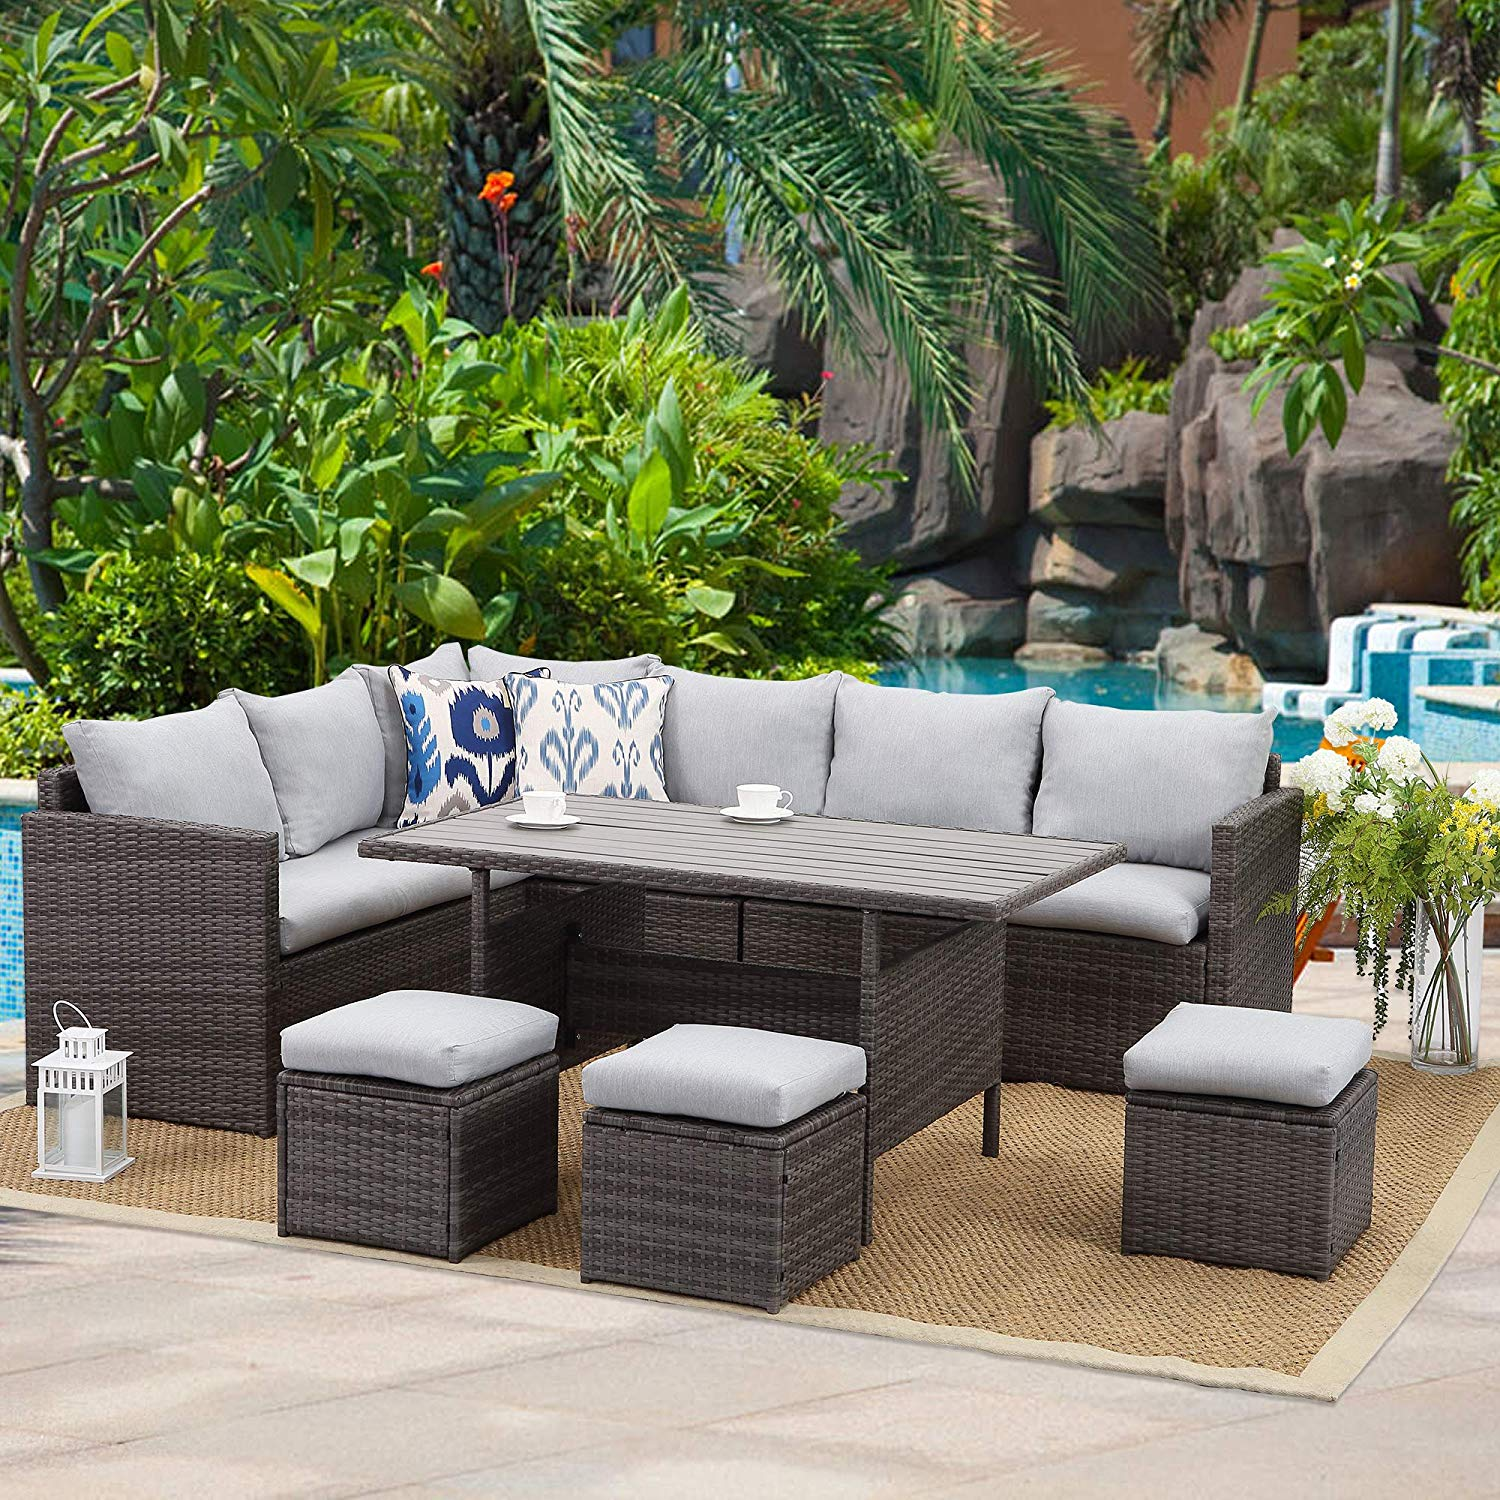 Wisteria Lane Patio Furniture Set,7 PCS Outdoor Conversation Set